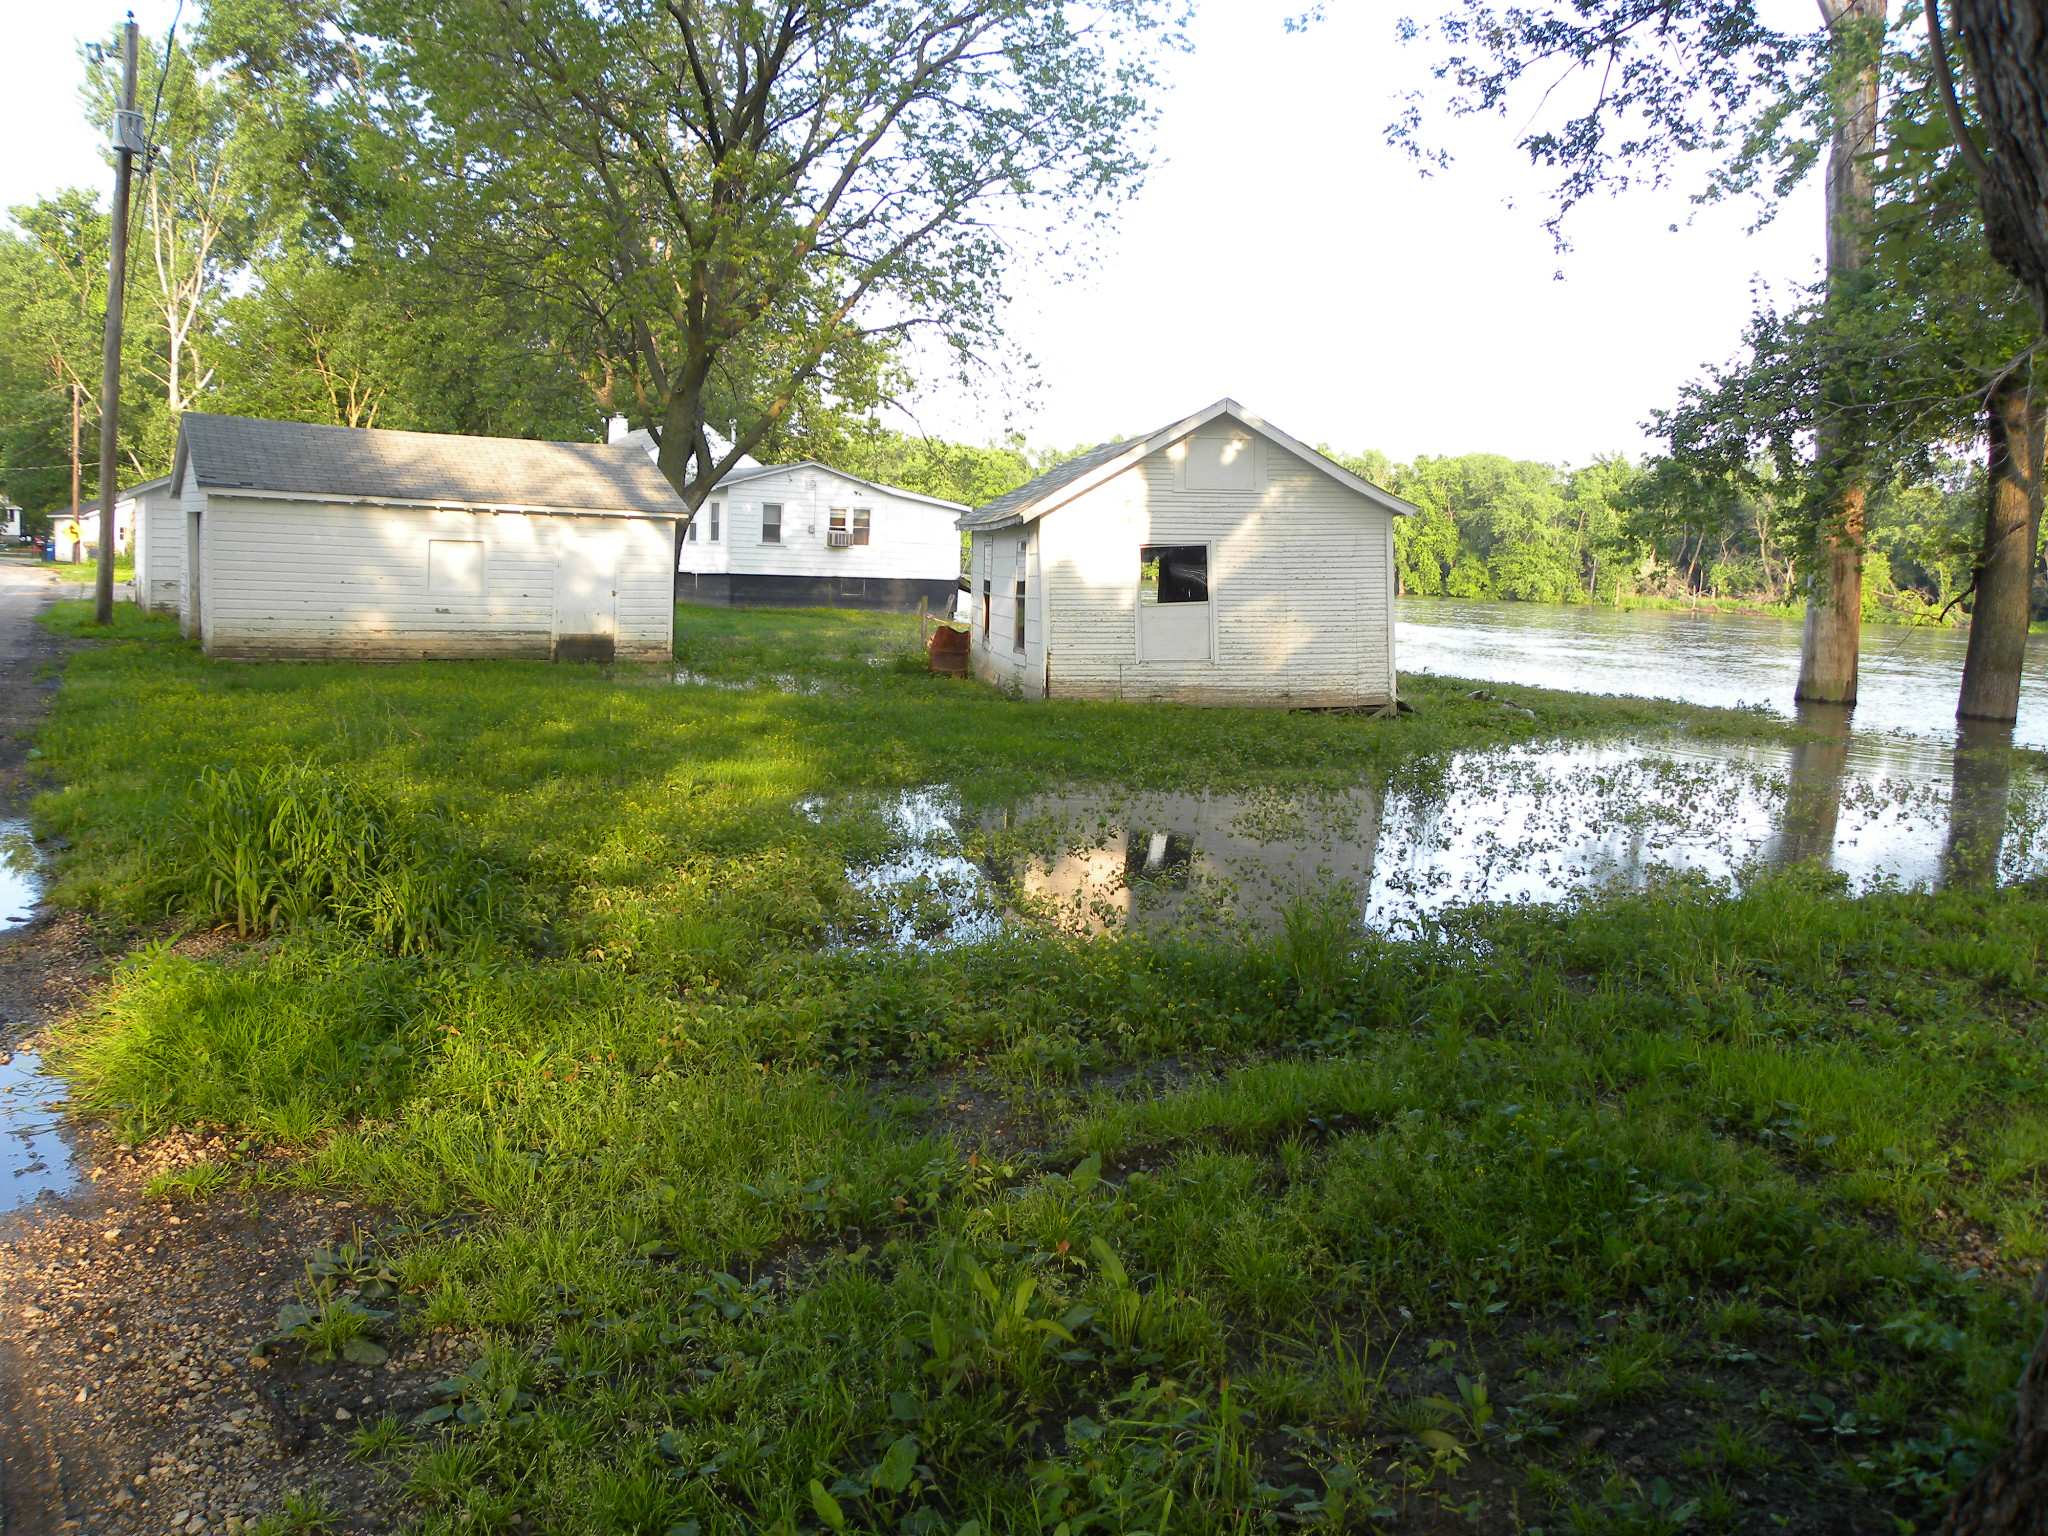 Worsening floods result from increased development upstream on the Rock River.